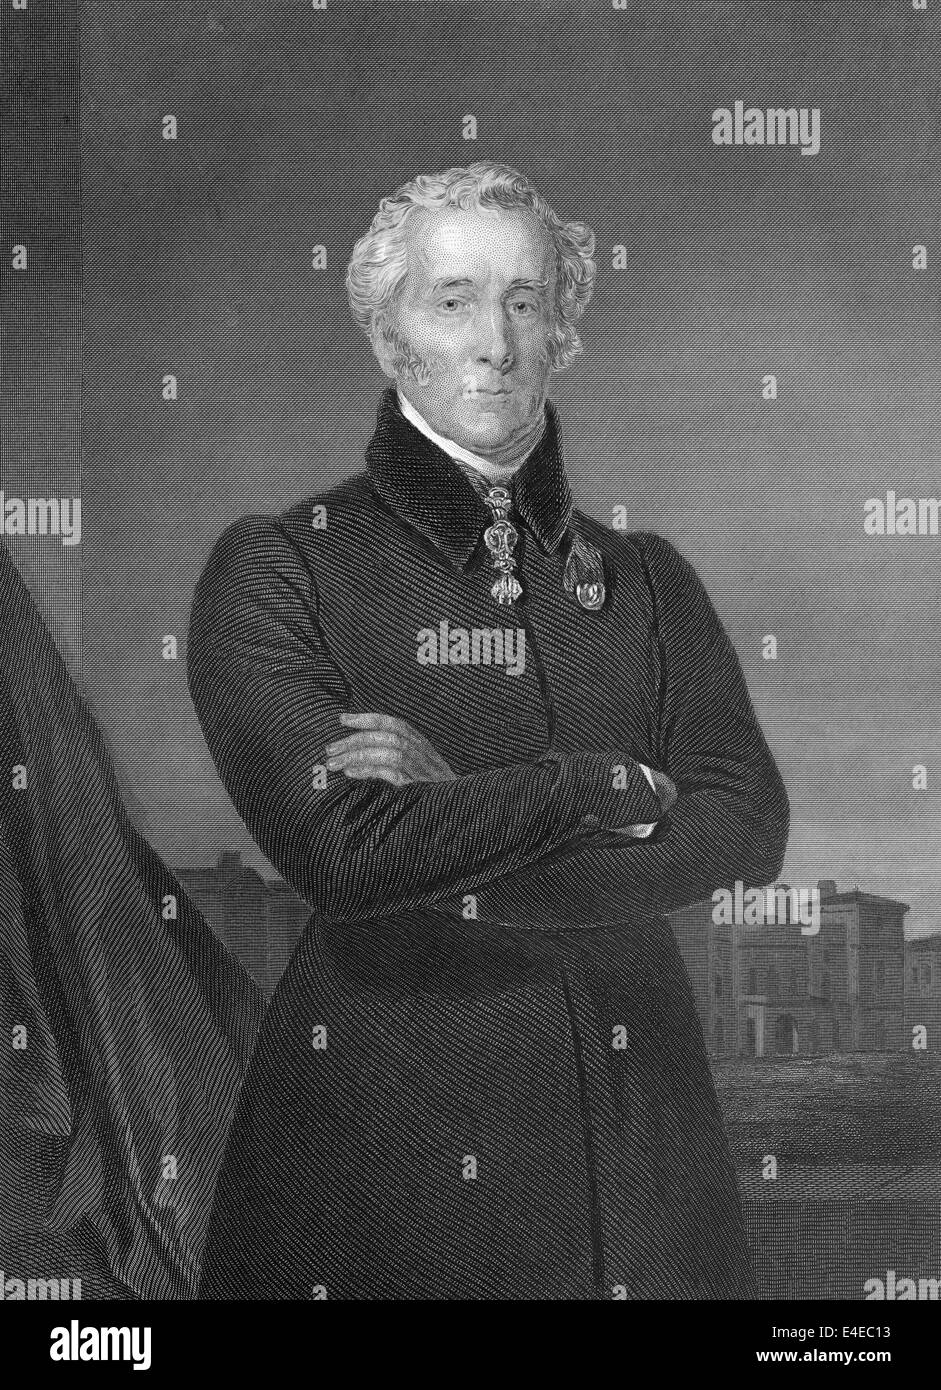 Arthur Wellesley, 1st Duke of Wellington, 1769 - 1852, field marshal and a British military leader, foreign minister - Stock Image